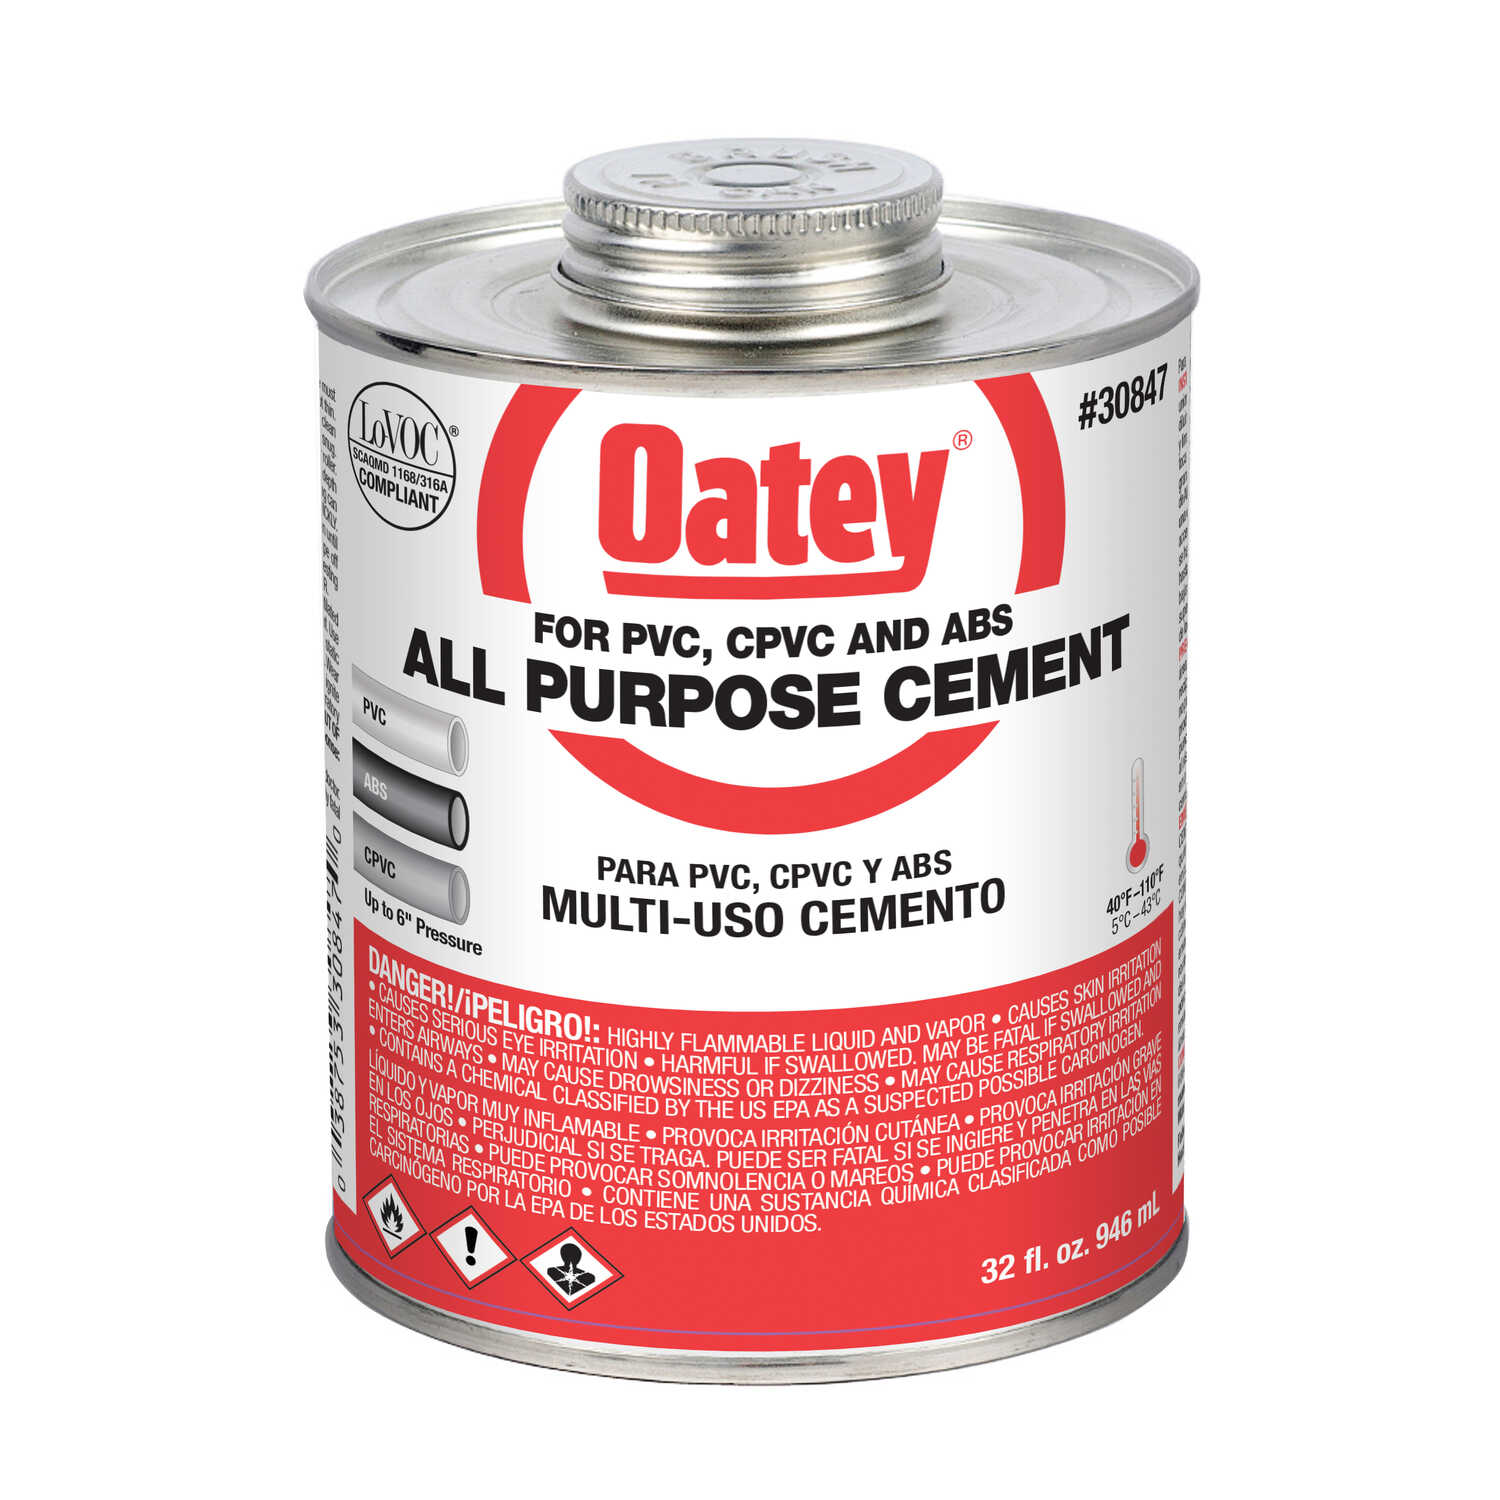 Oatey  All-Purpose Cement  Clear  32 oz. For CPVC/PVC